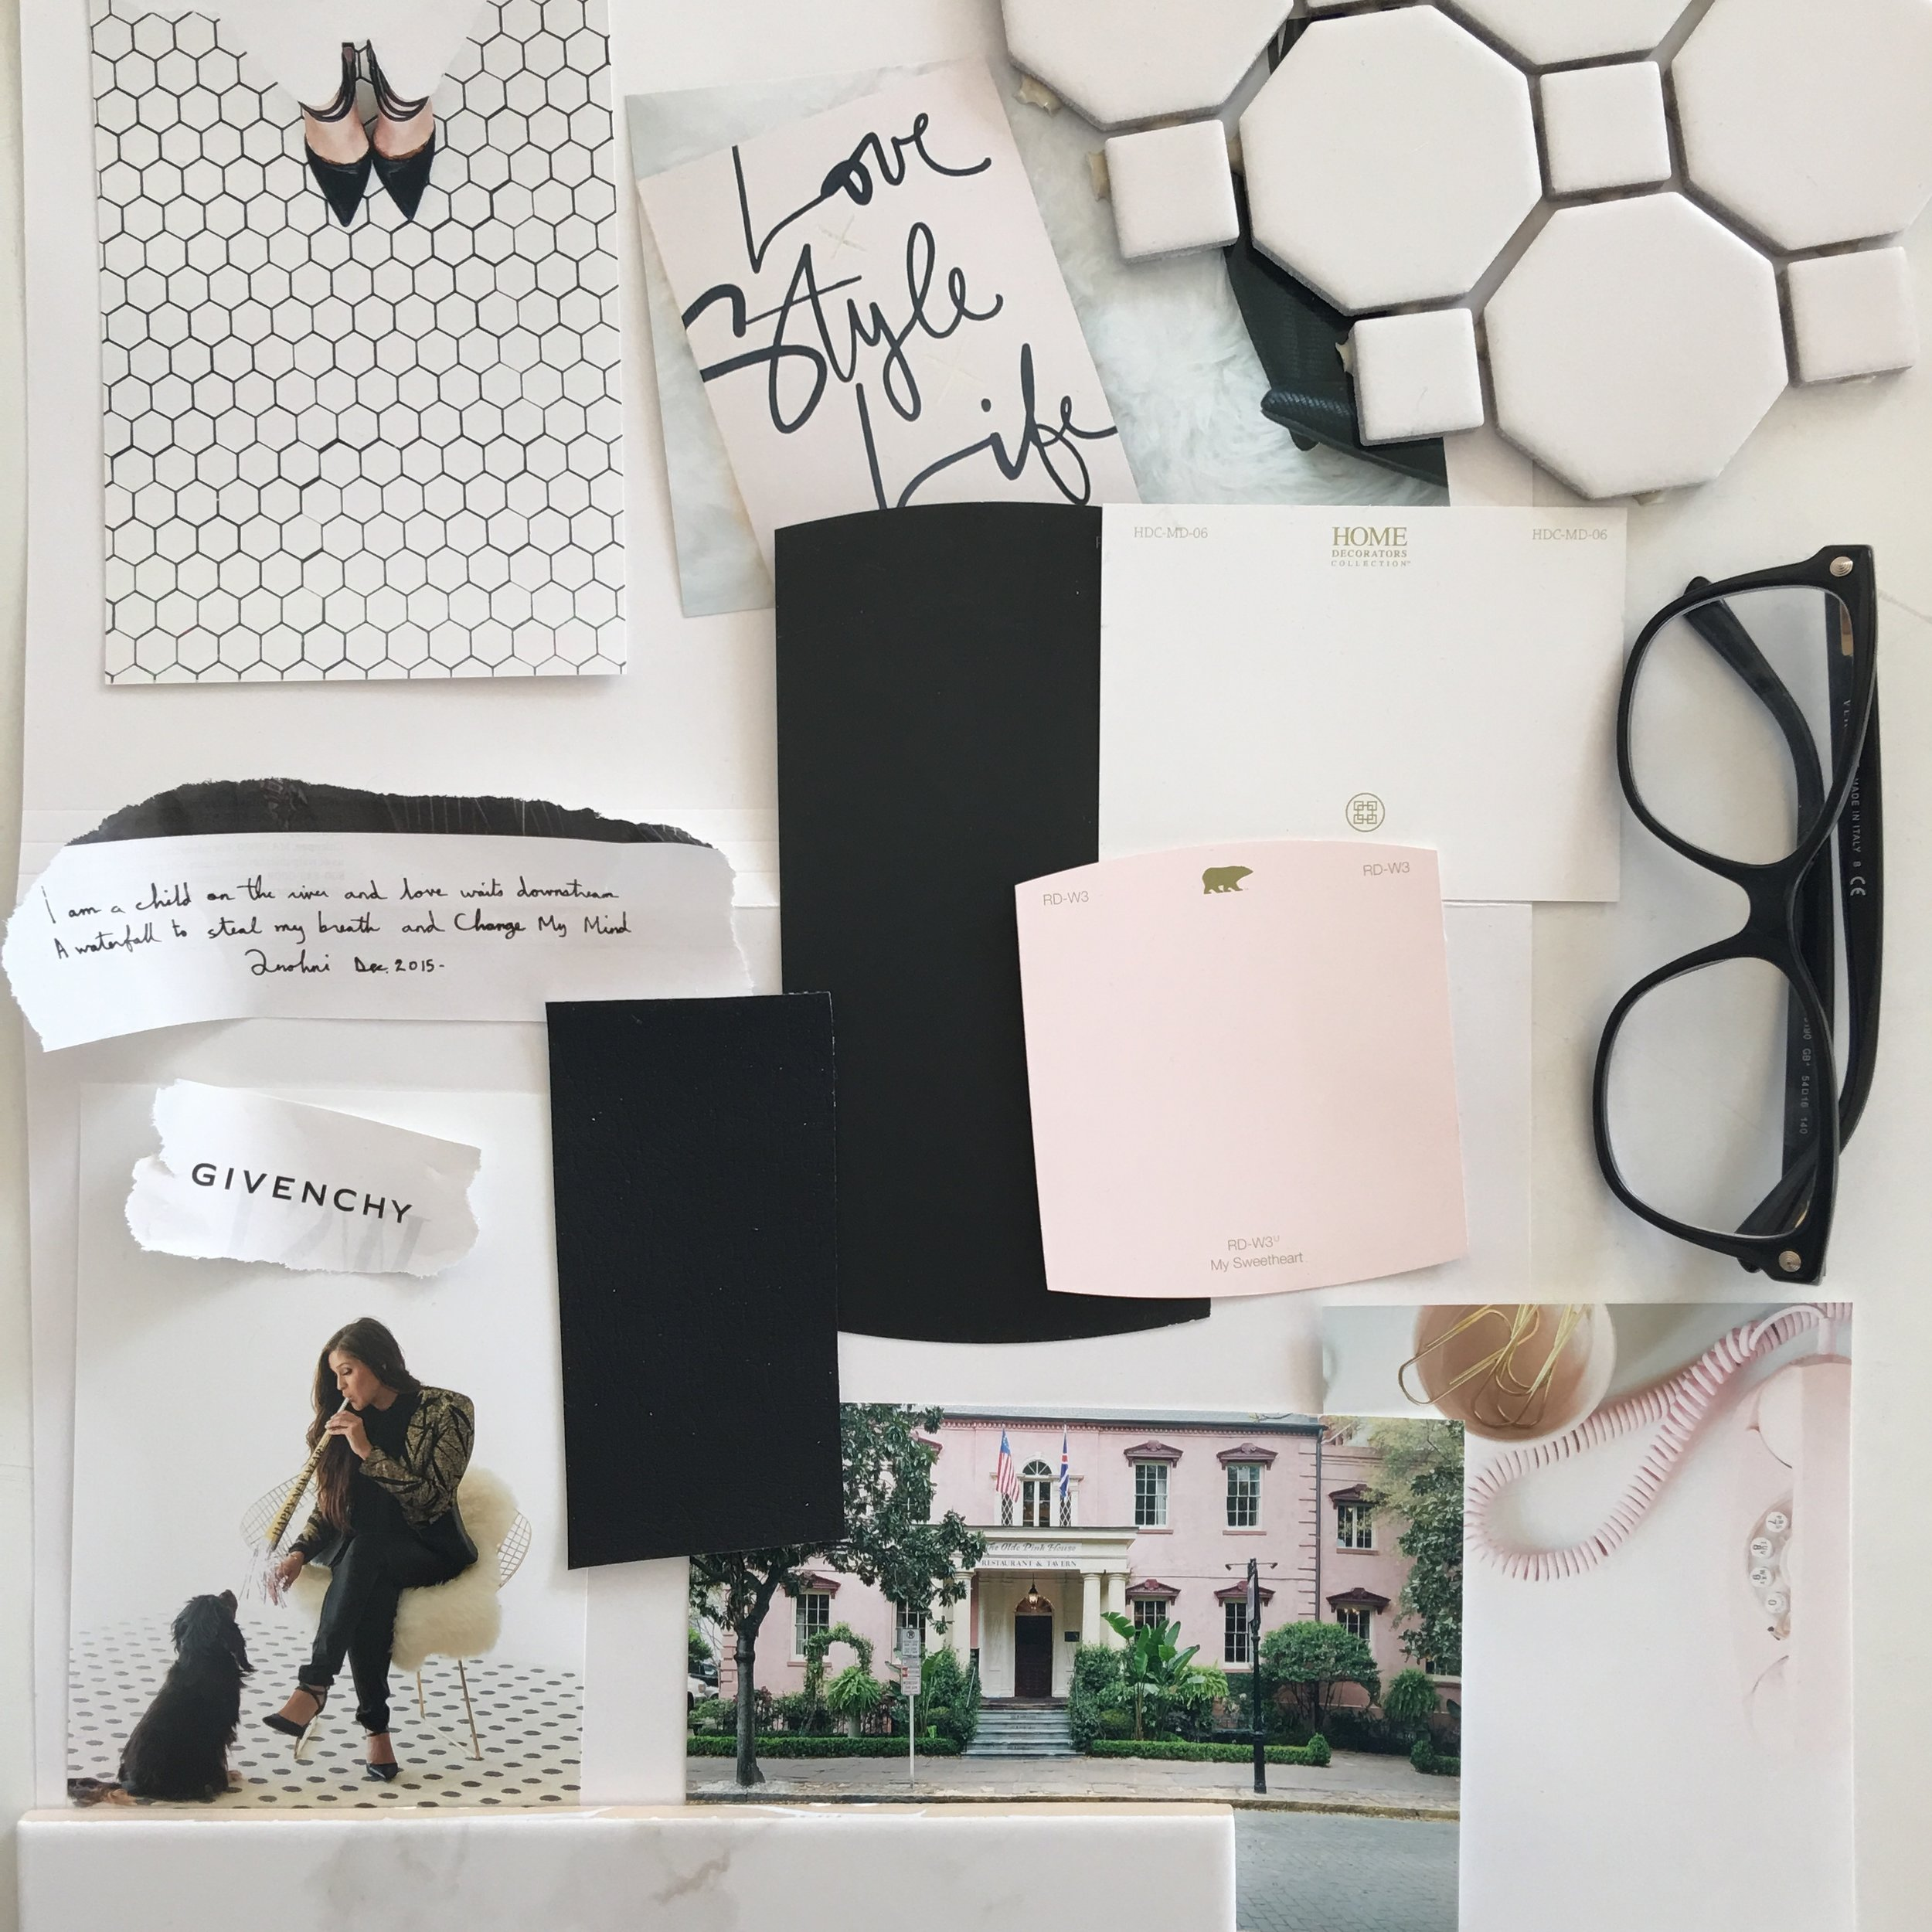 This moodboard was created by Bri Ramos when starting The Buzz Brand